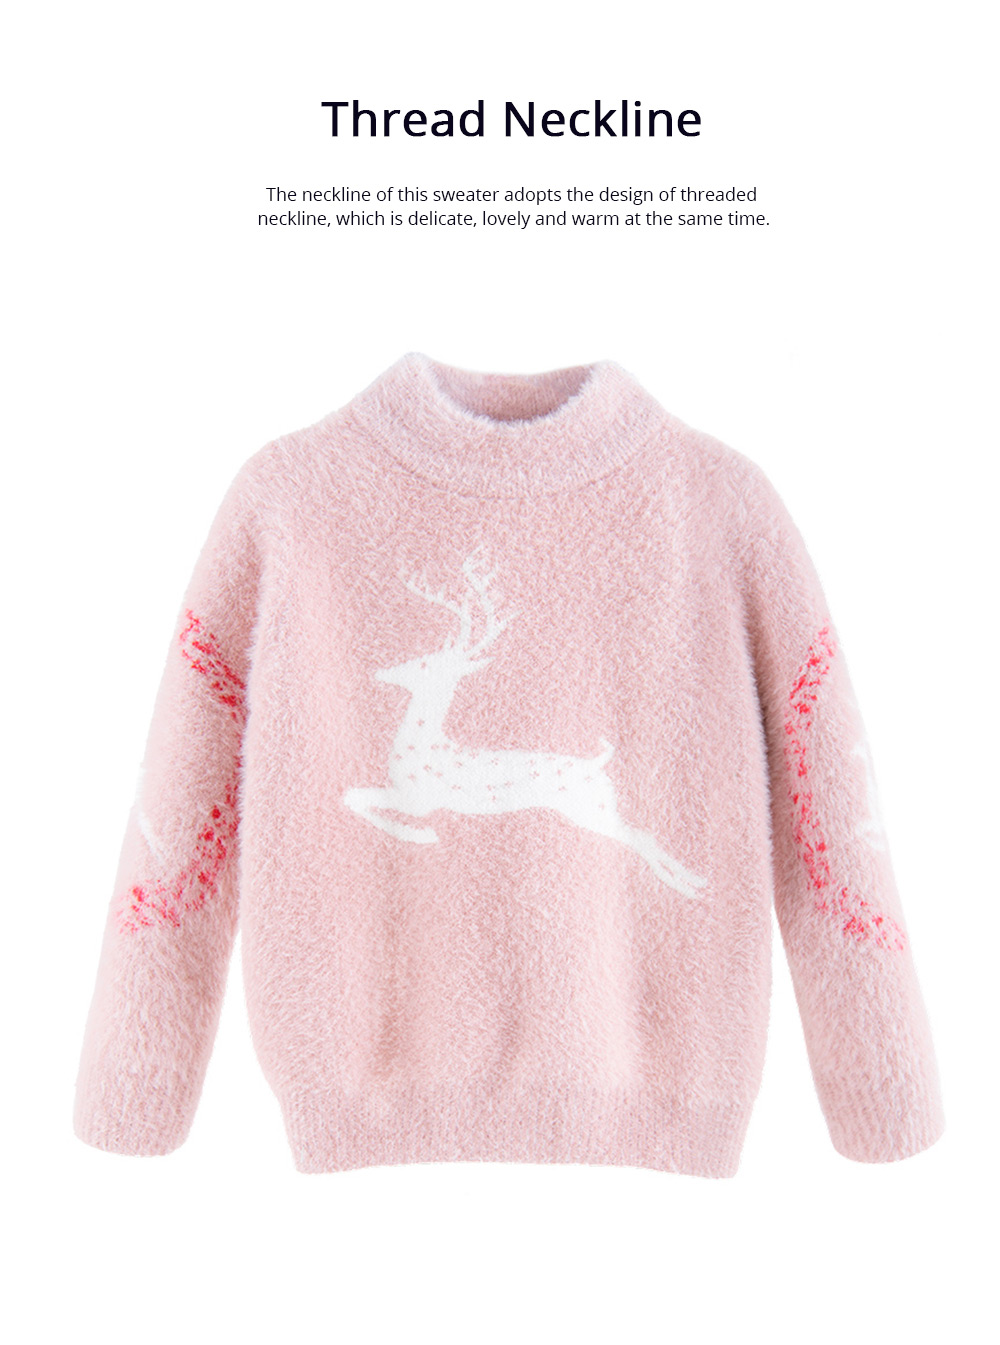 Children's Mink Autumn Warm Coat Winter Girl's Sweater 2019 New Style Girl's Pullover Thickened Top Christmas Gift 5